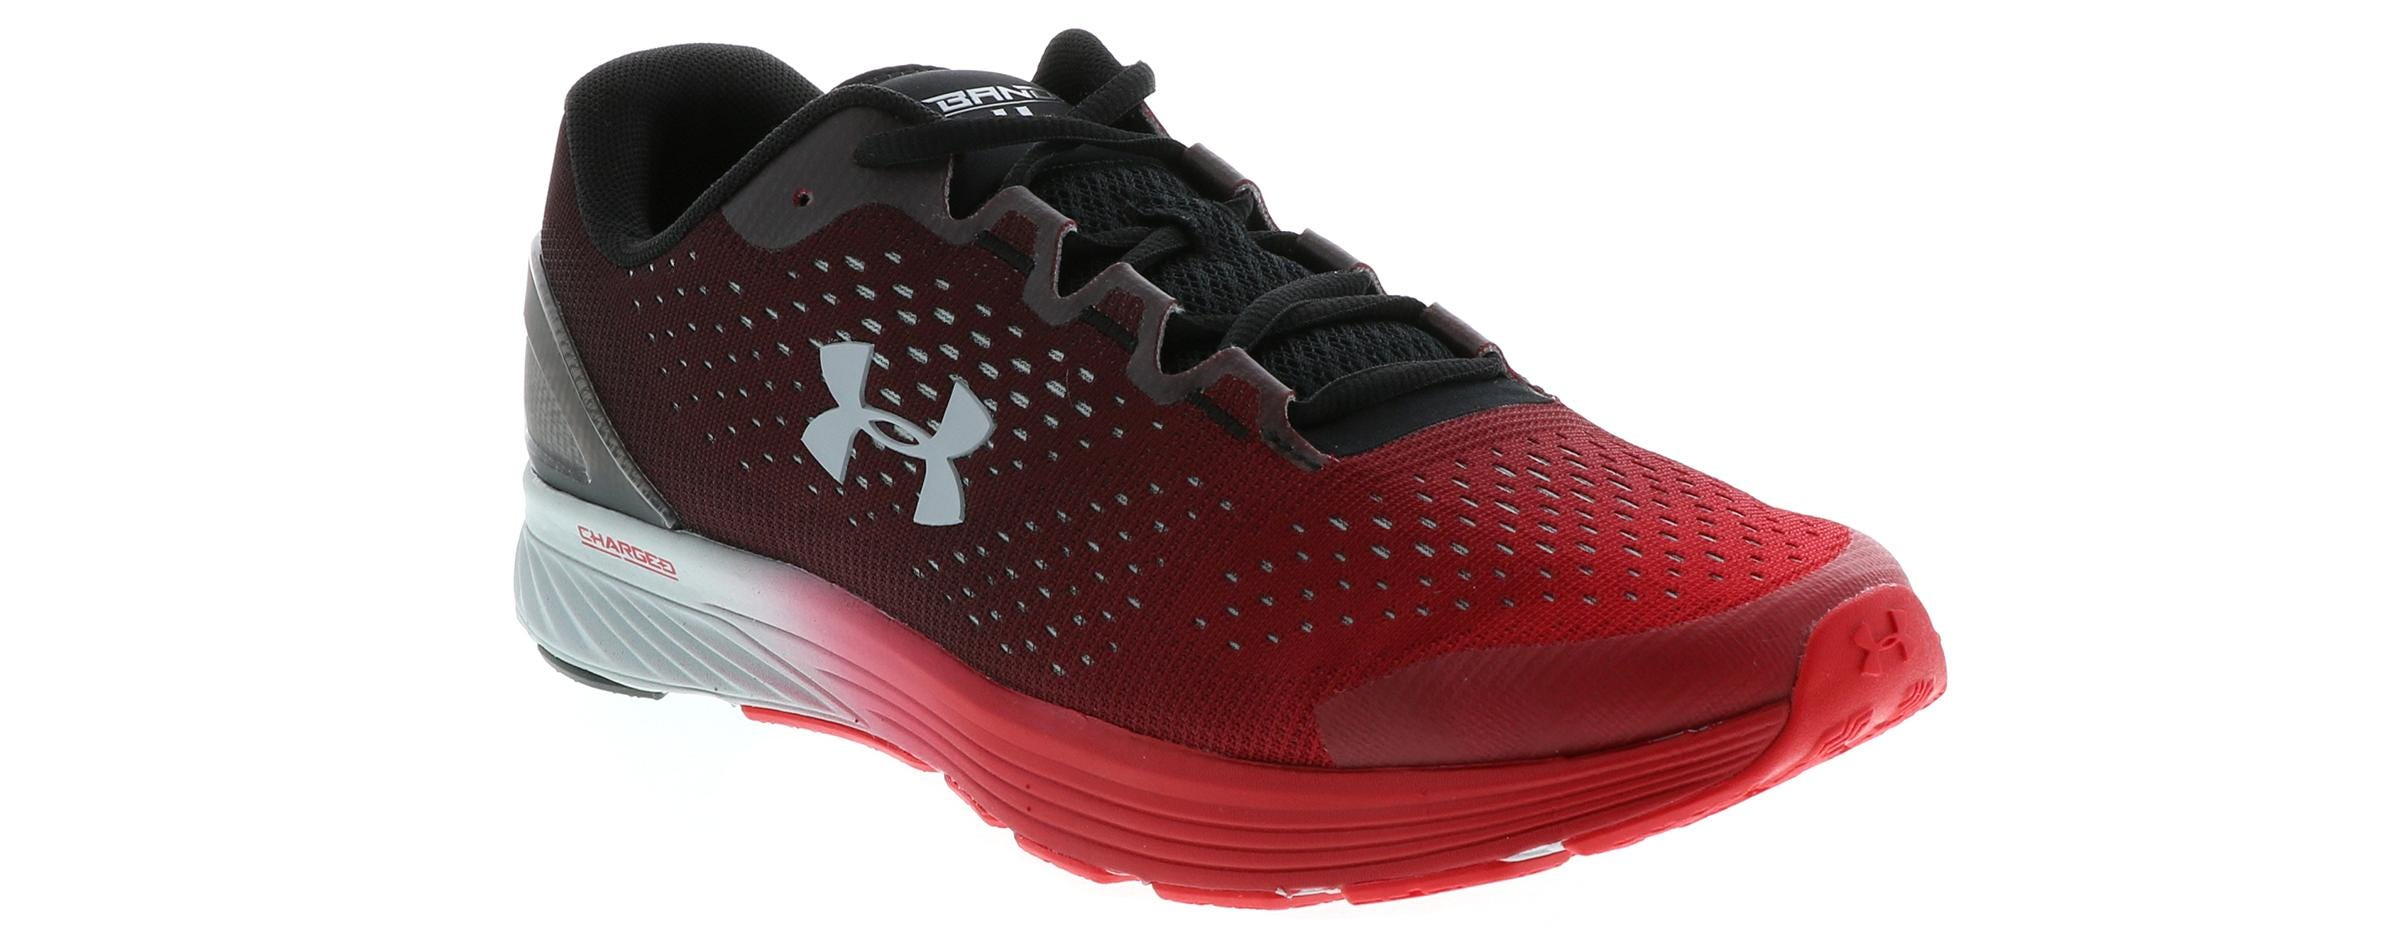 promo code 06d78 98acd Men's Under Armour Charged Bandit 4